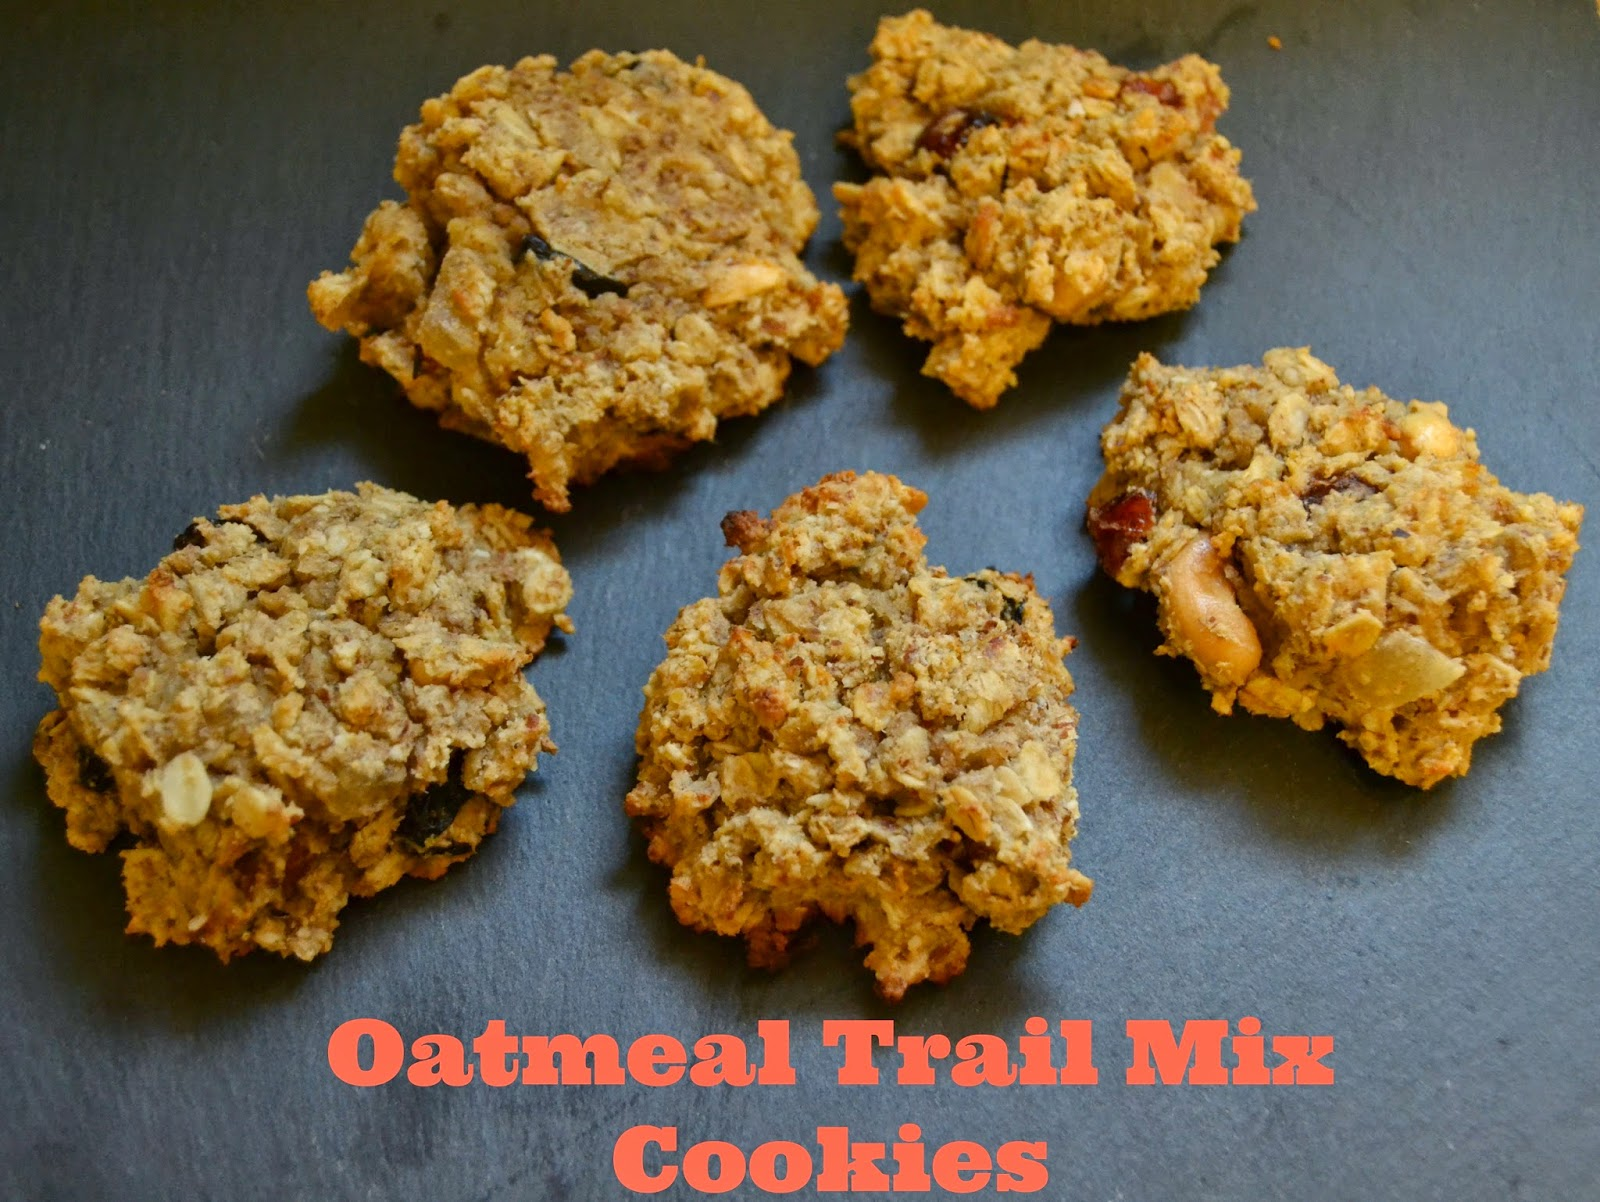 Oatmeal Trail Mix Cookies